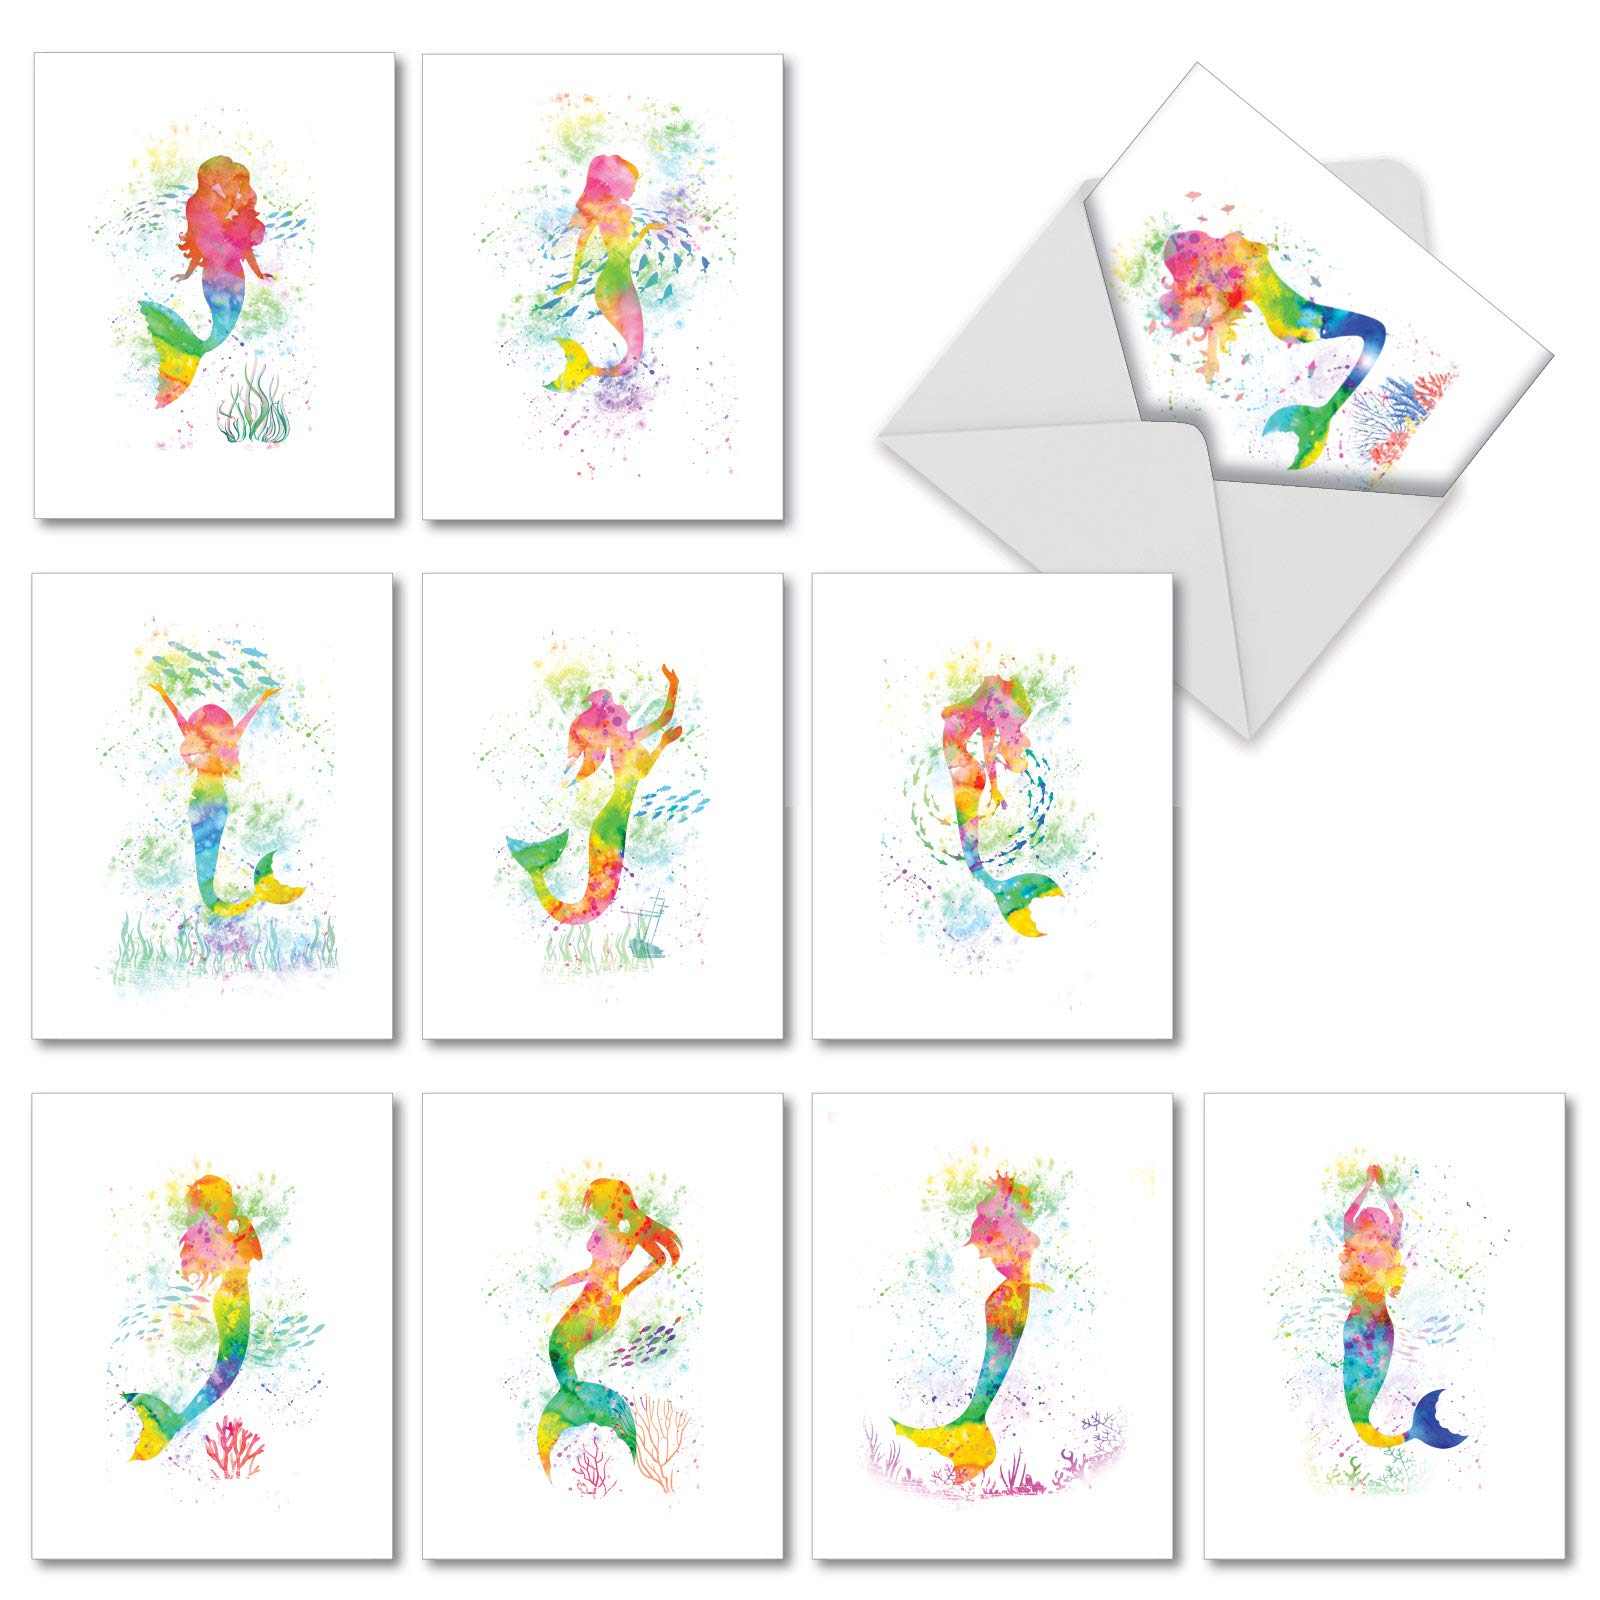 Funky Rainbow Mermaids - Assortment of 10 Watercolor Note Cards with Envelopes (4 x 5.12 Inch) - Box of Blank All Occasion Notecards for Girls, Women - Cute Colorful Ocean Mermaid AM6863OCB-B1x10